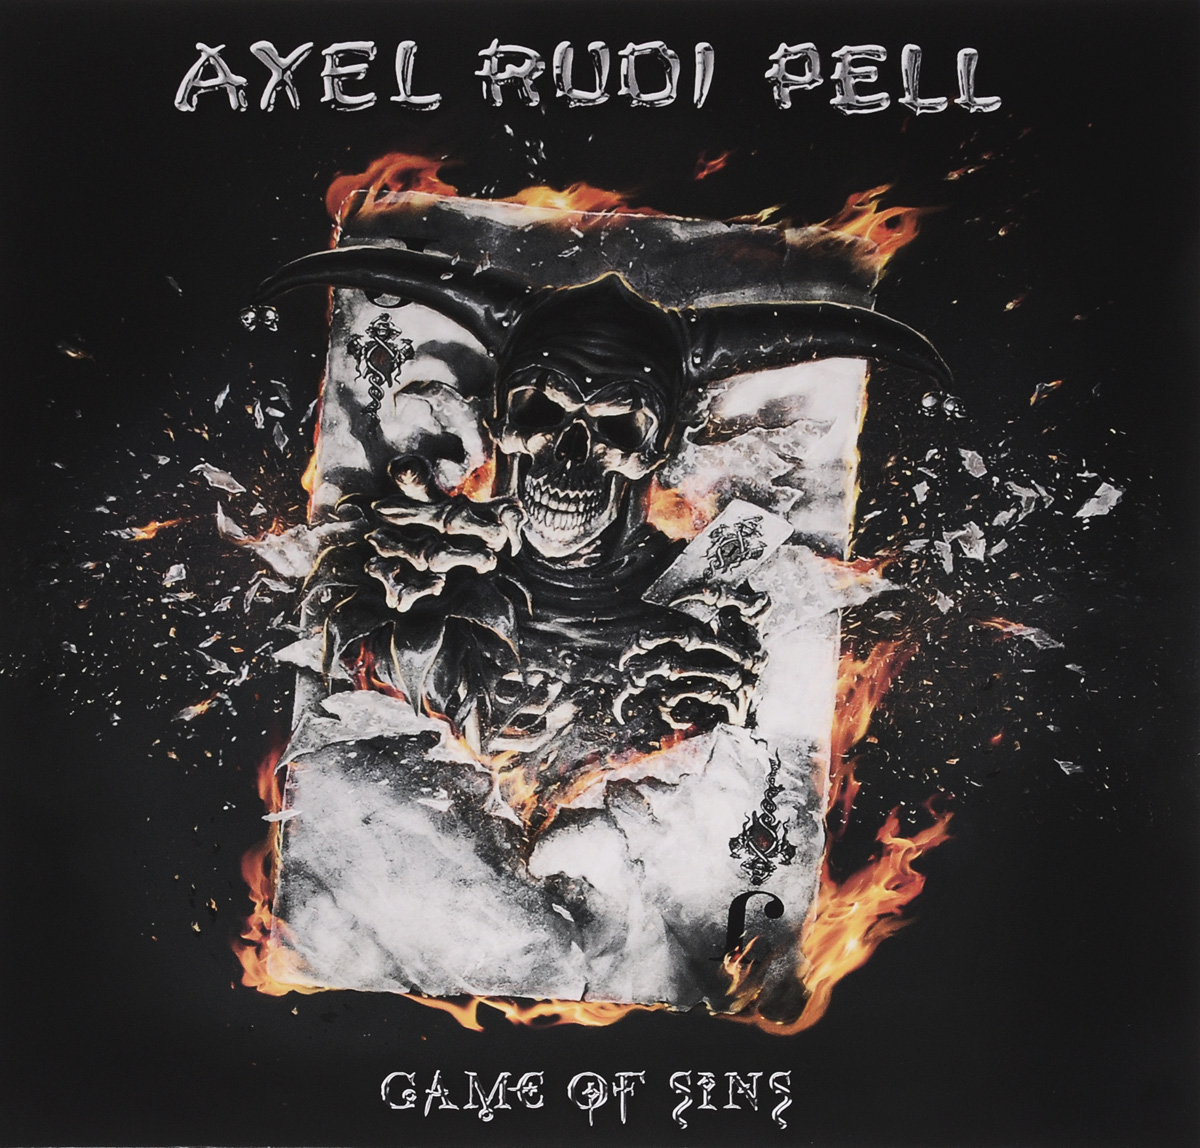 Аксель Руди Пелл Axel Rudi Pell. Game Of Sins (2 LP + CD) anal sex toys steel butt plug anal tail cone ball poppers man woman high quality aluminum adult products free shipping